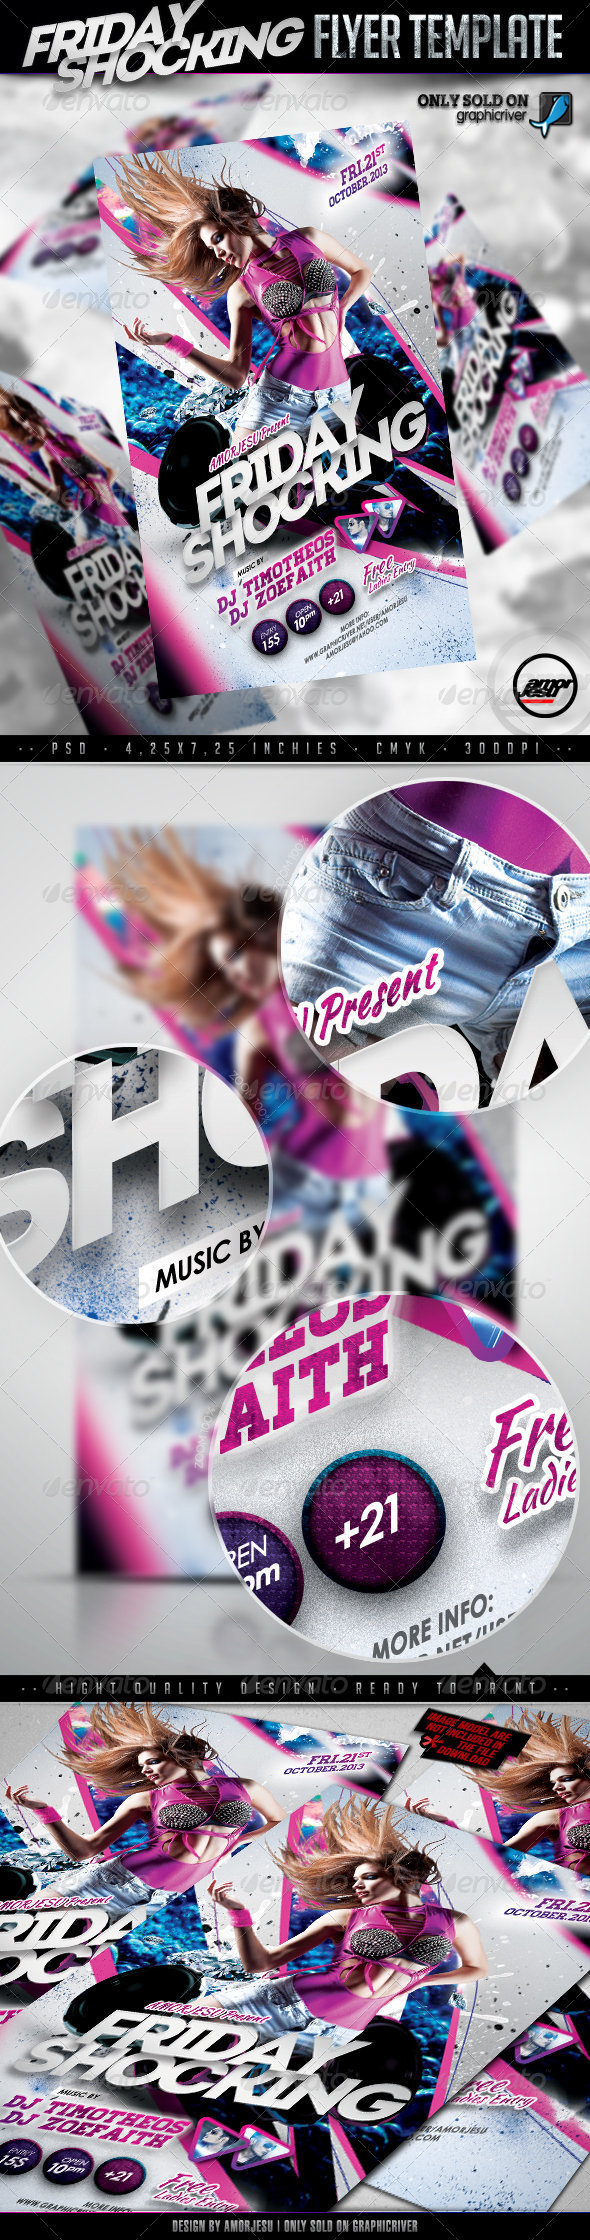 Friday Shocking Flyer Template - Clubs & Parties Events